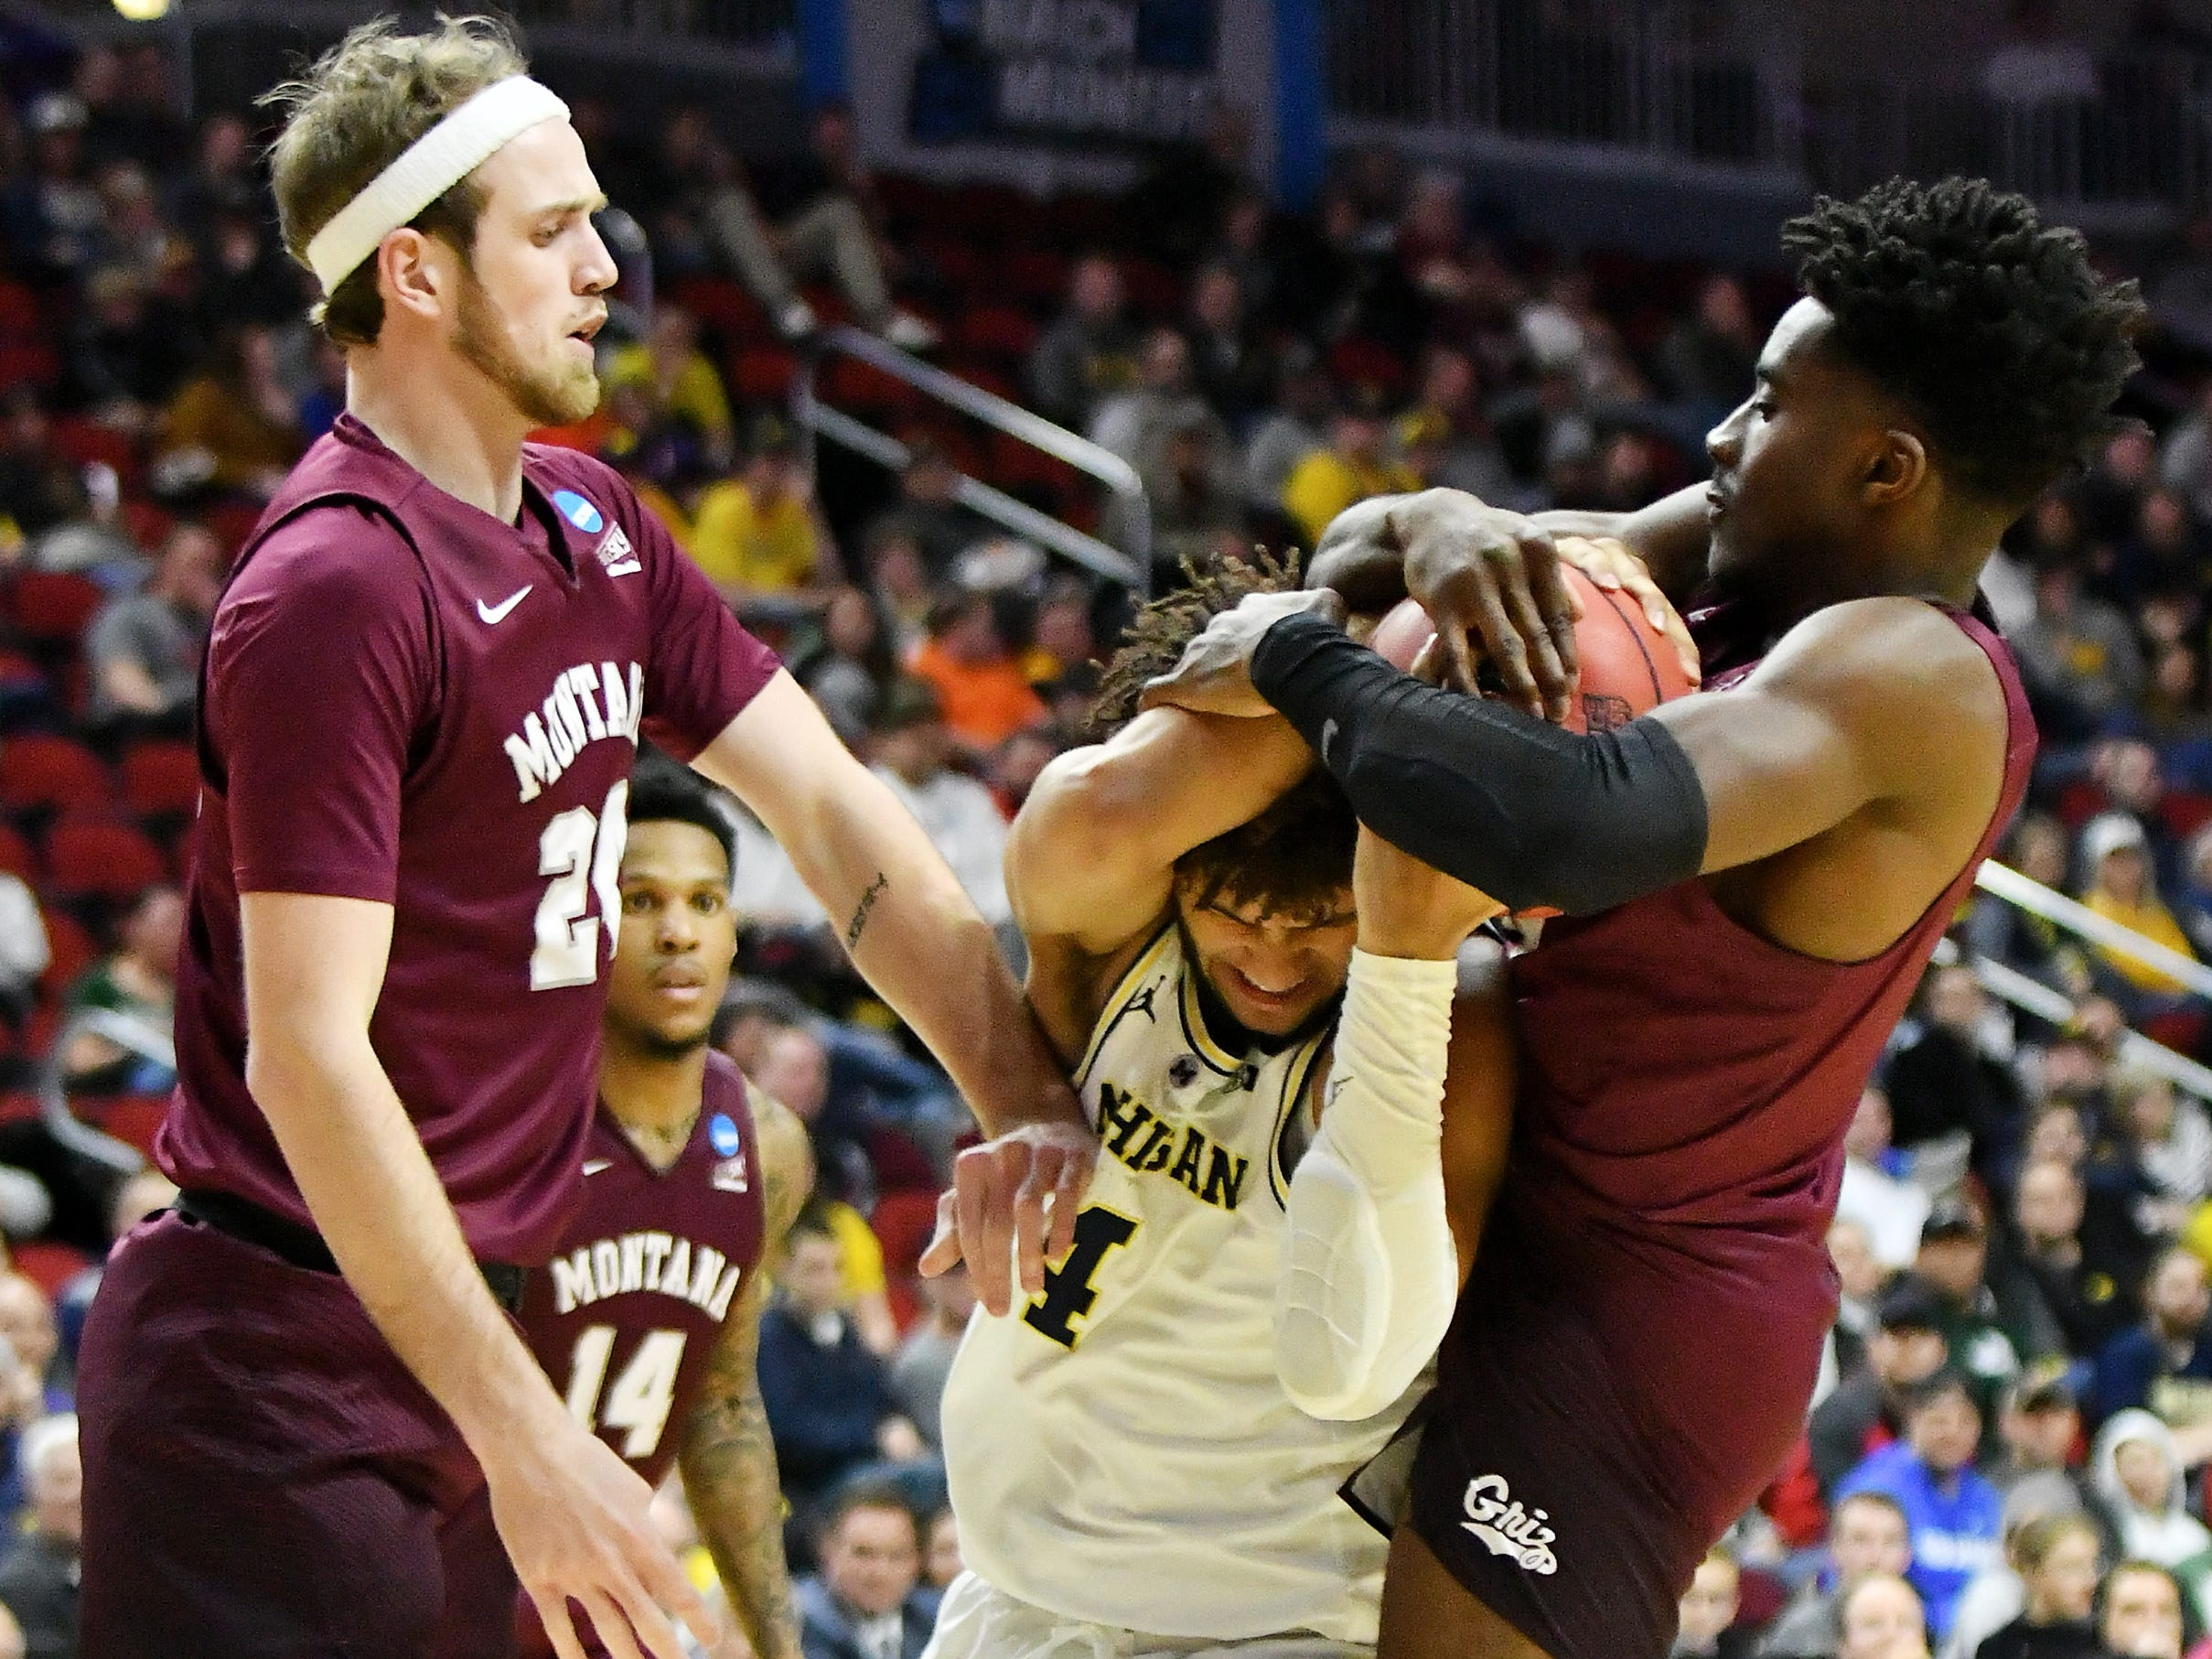 Montana guard Michael Oguine, right, tries to grab the ball from Michigan forward Isaiah Livers (4) in the second half.